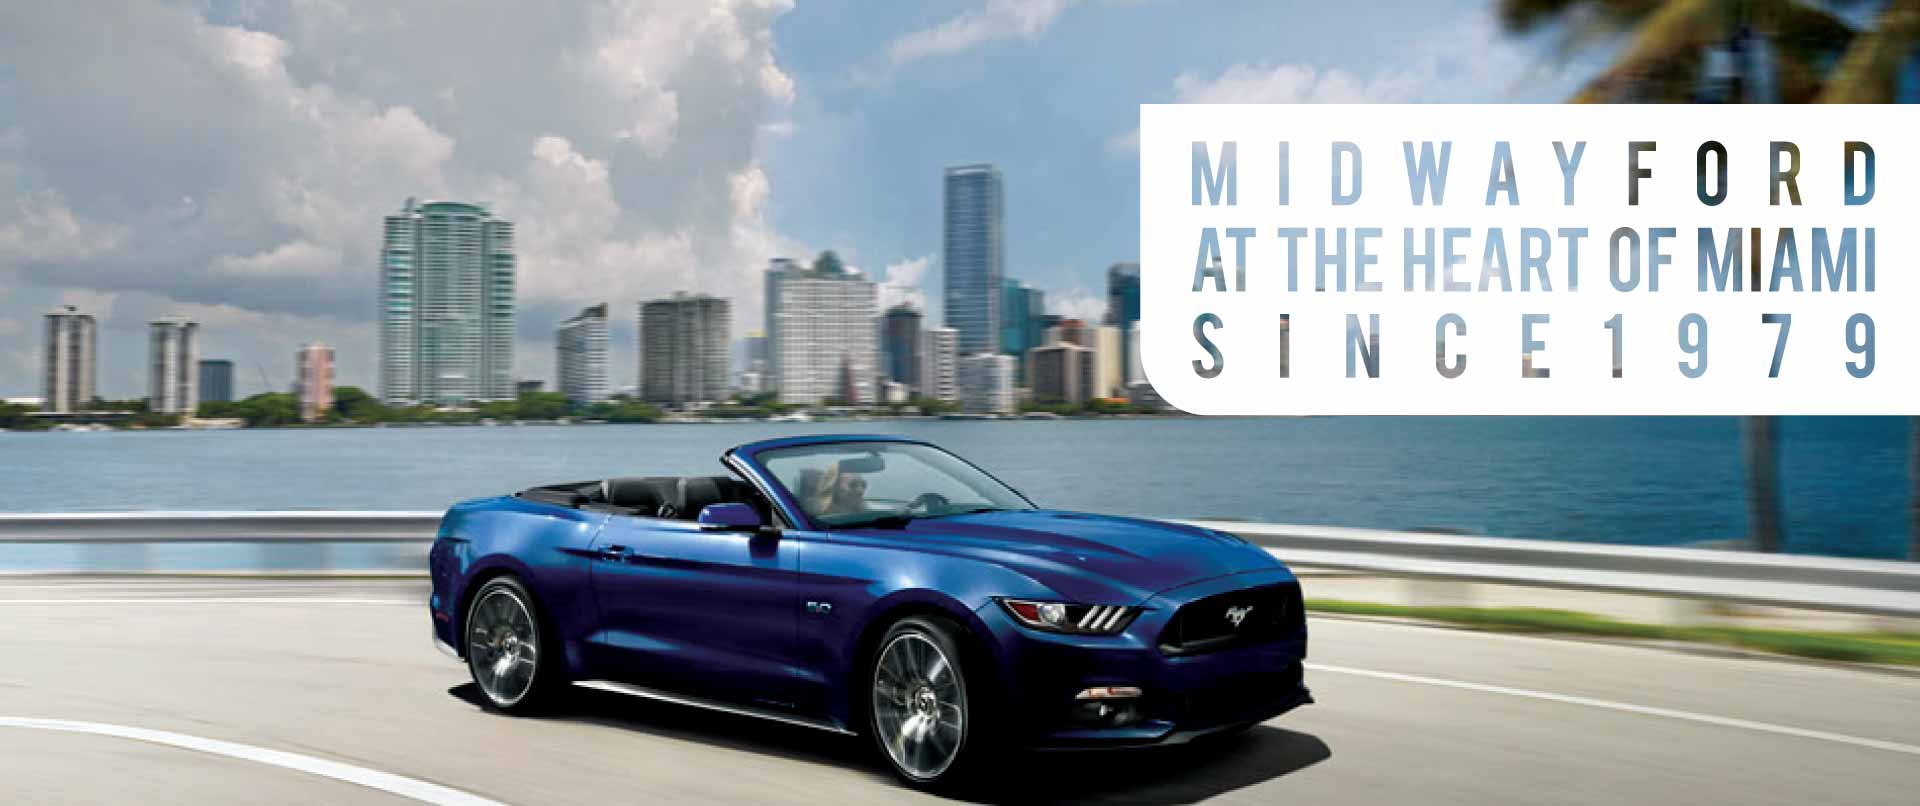 Miami Ford dealer